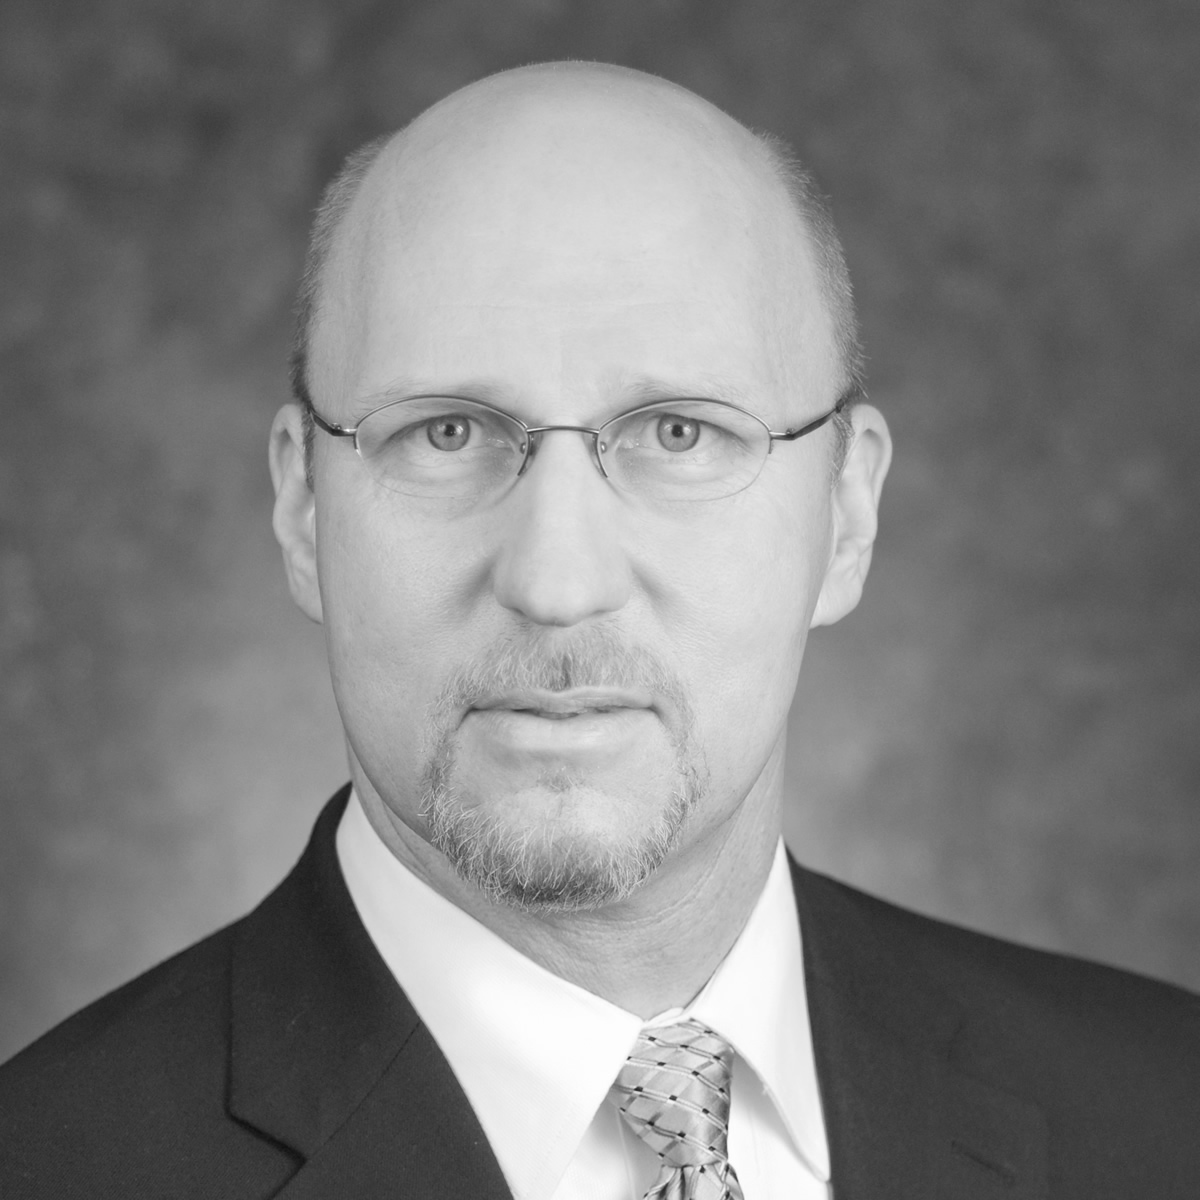 Jim Meier, Vice President of Environmental; Arch Coal Inc. biography